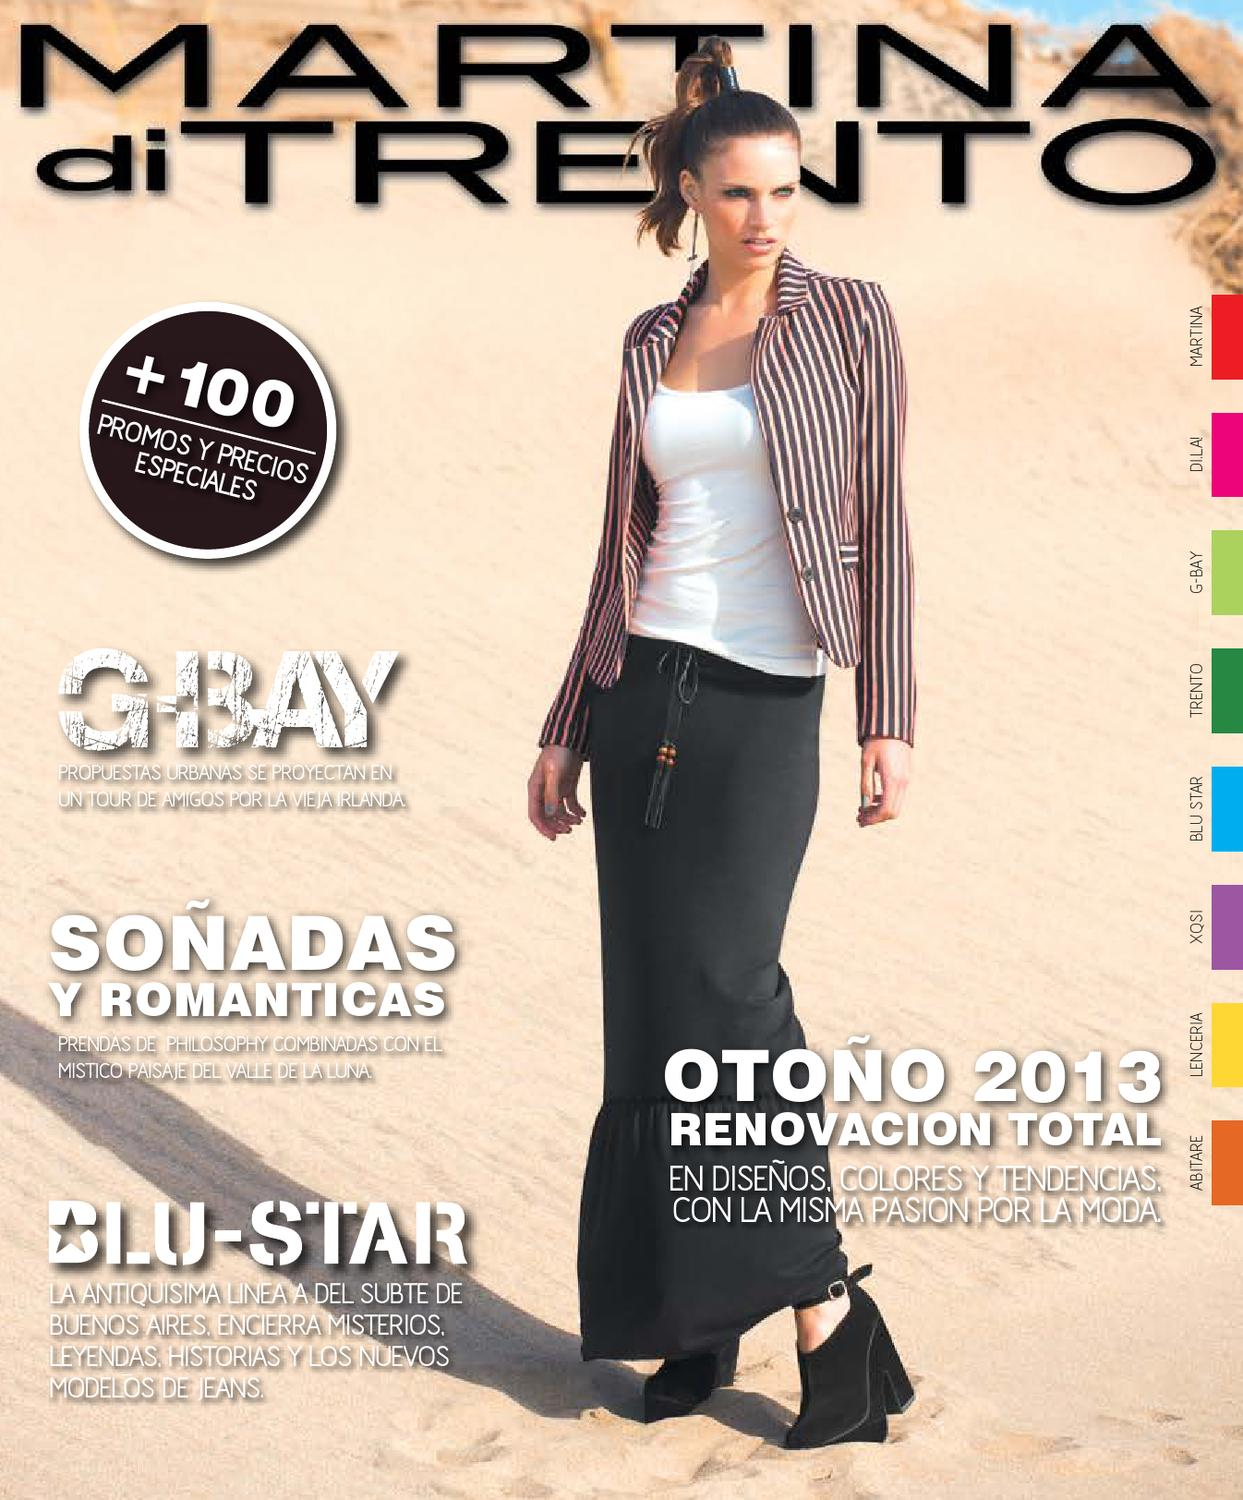 CATALOGO 03 04-2013 ARGENTINA by Martina di Trento - issuu b0022e9e381